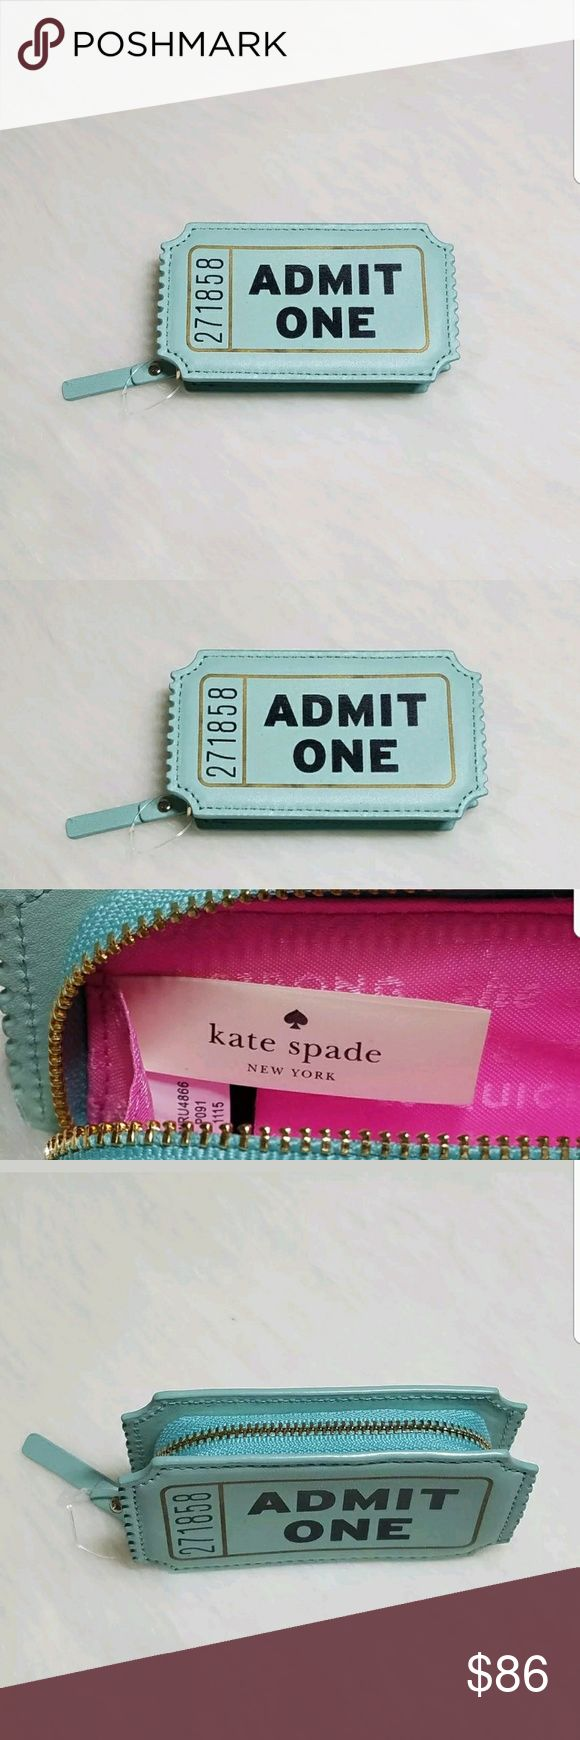 """Kate Spade Flavor of Month Movie Ticket Coin Purse Up for sale Kate Spade Flavor of the Month Movie Ticket Coin Purse -  Aqua Color  Measurements : H- 2.3 ×""""W-4.1""""× D-0.8"""" kate spade Bags Mini Bags"""